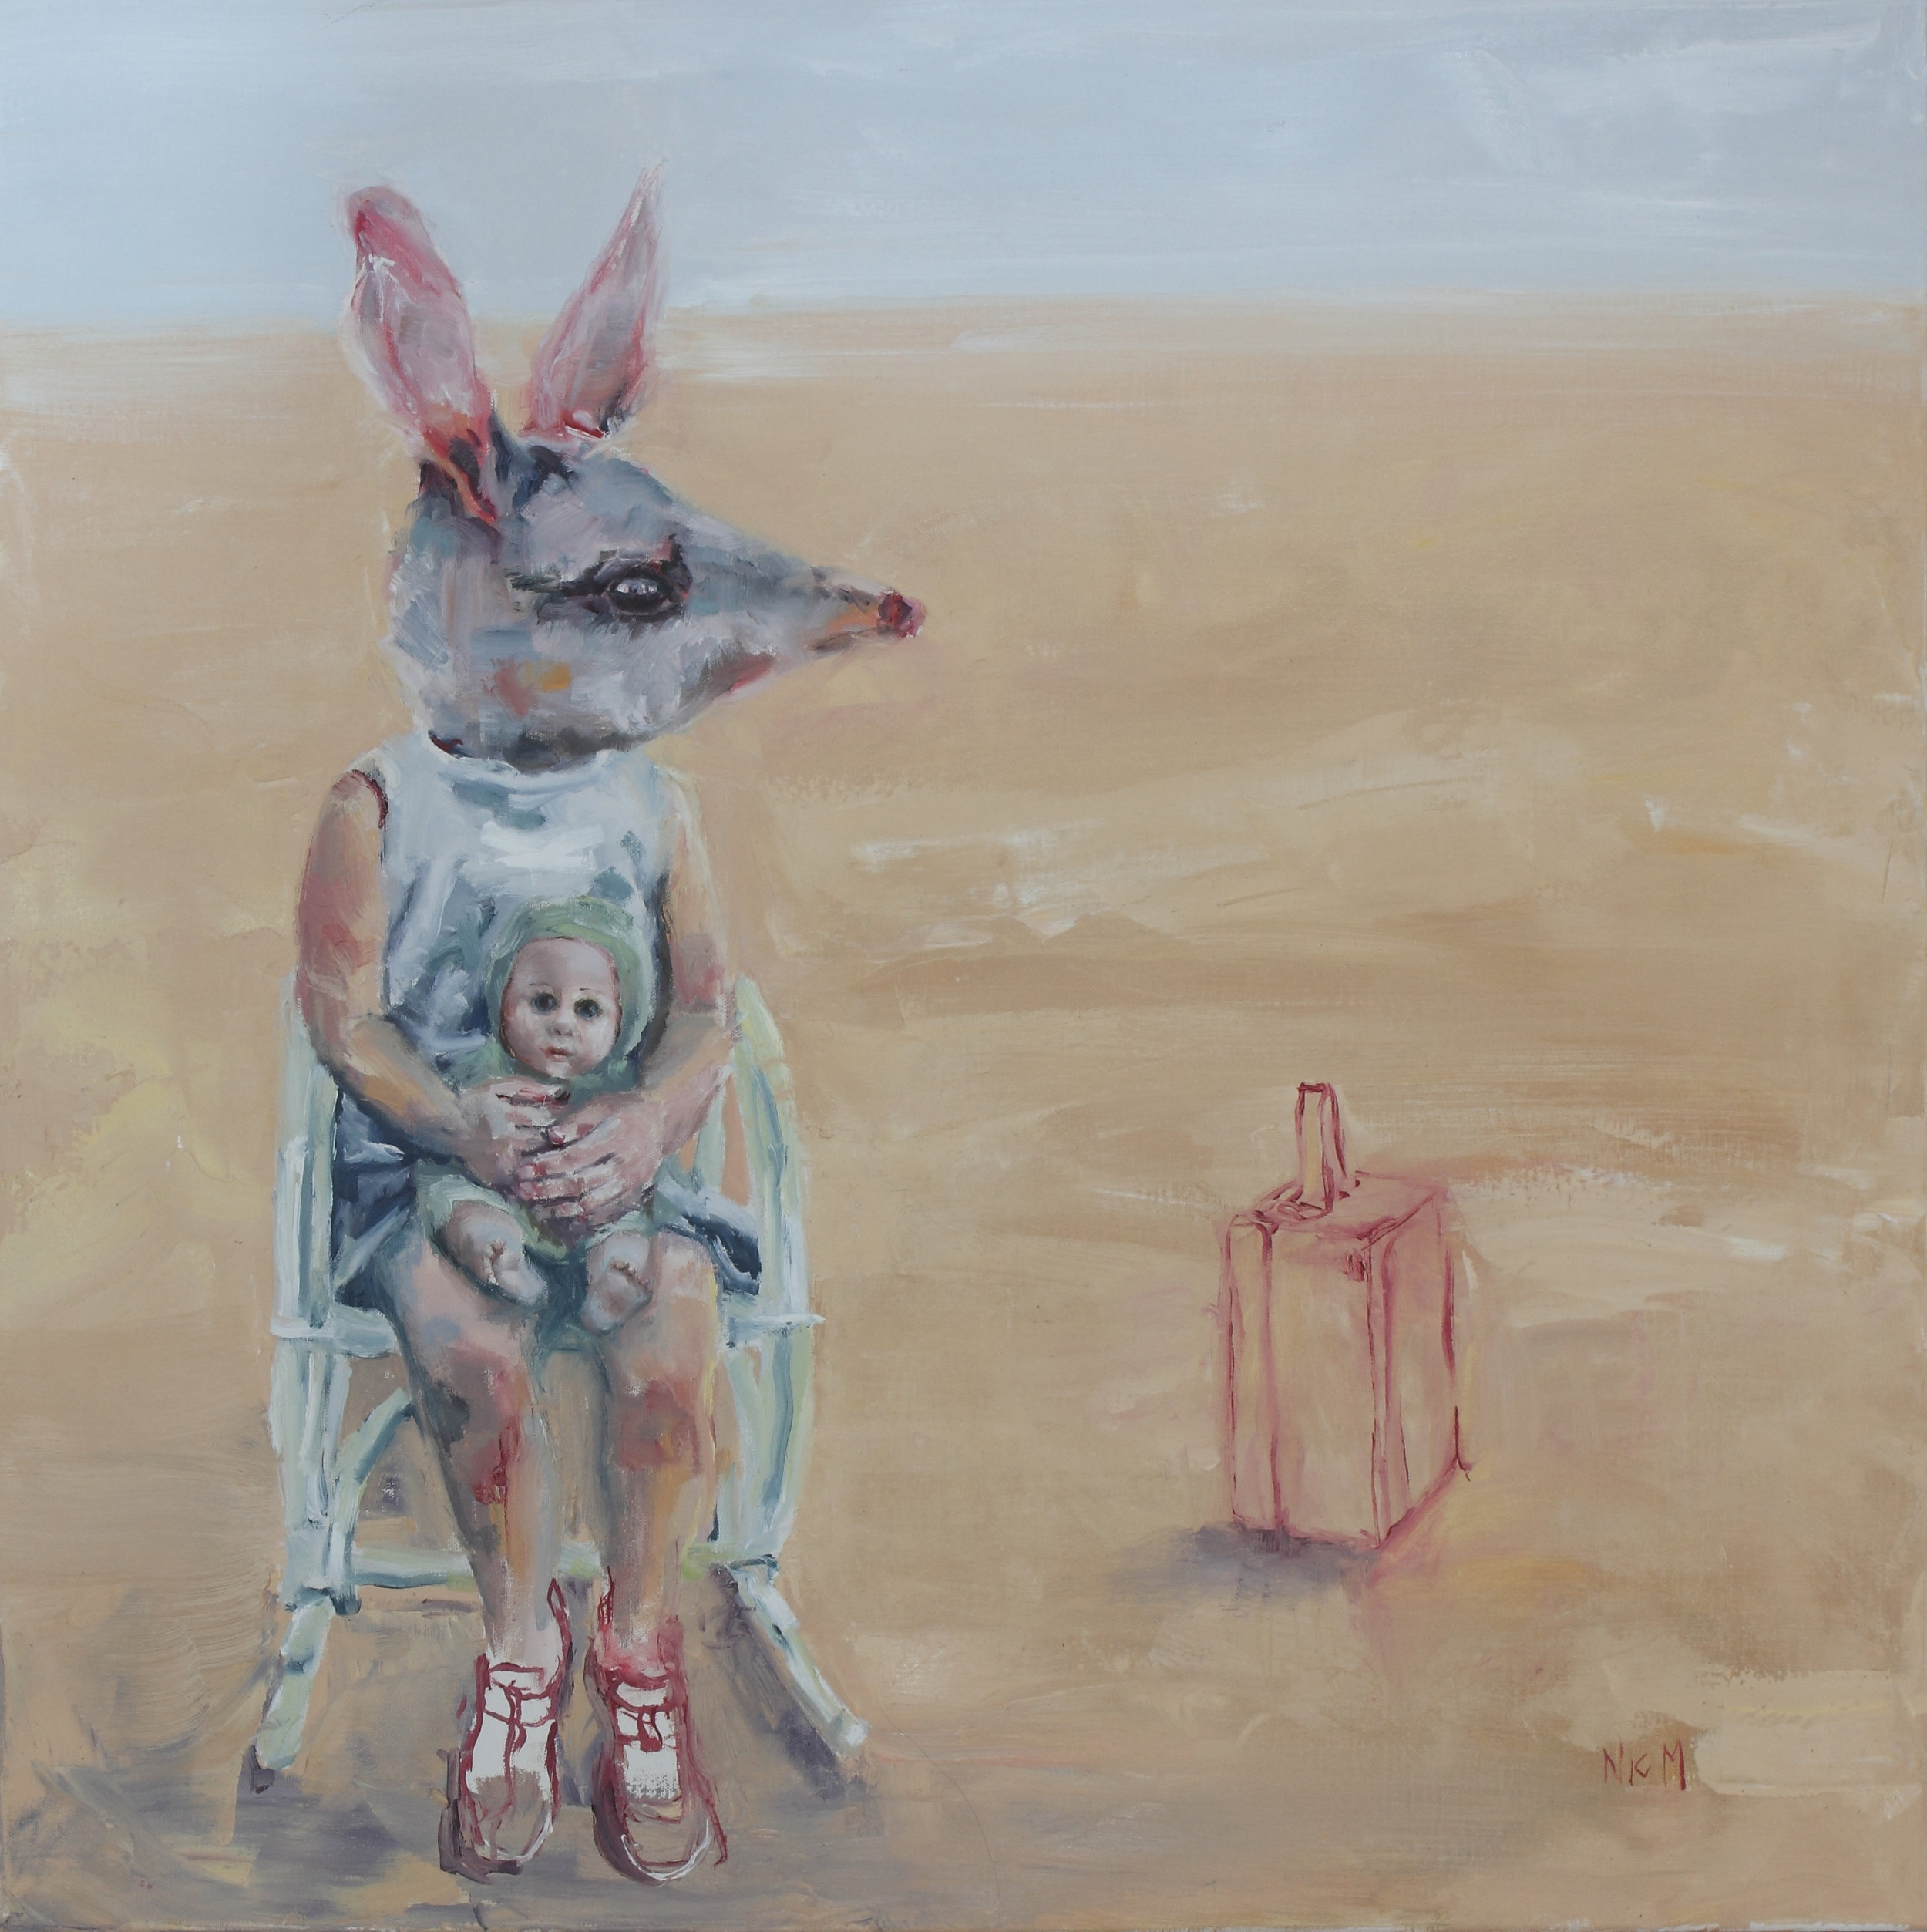 01 nic mason_bilby bilbi rocking and waiting_oil on canvas_2016_76x76cm.jpg